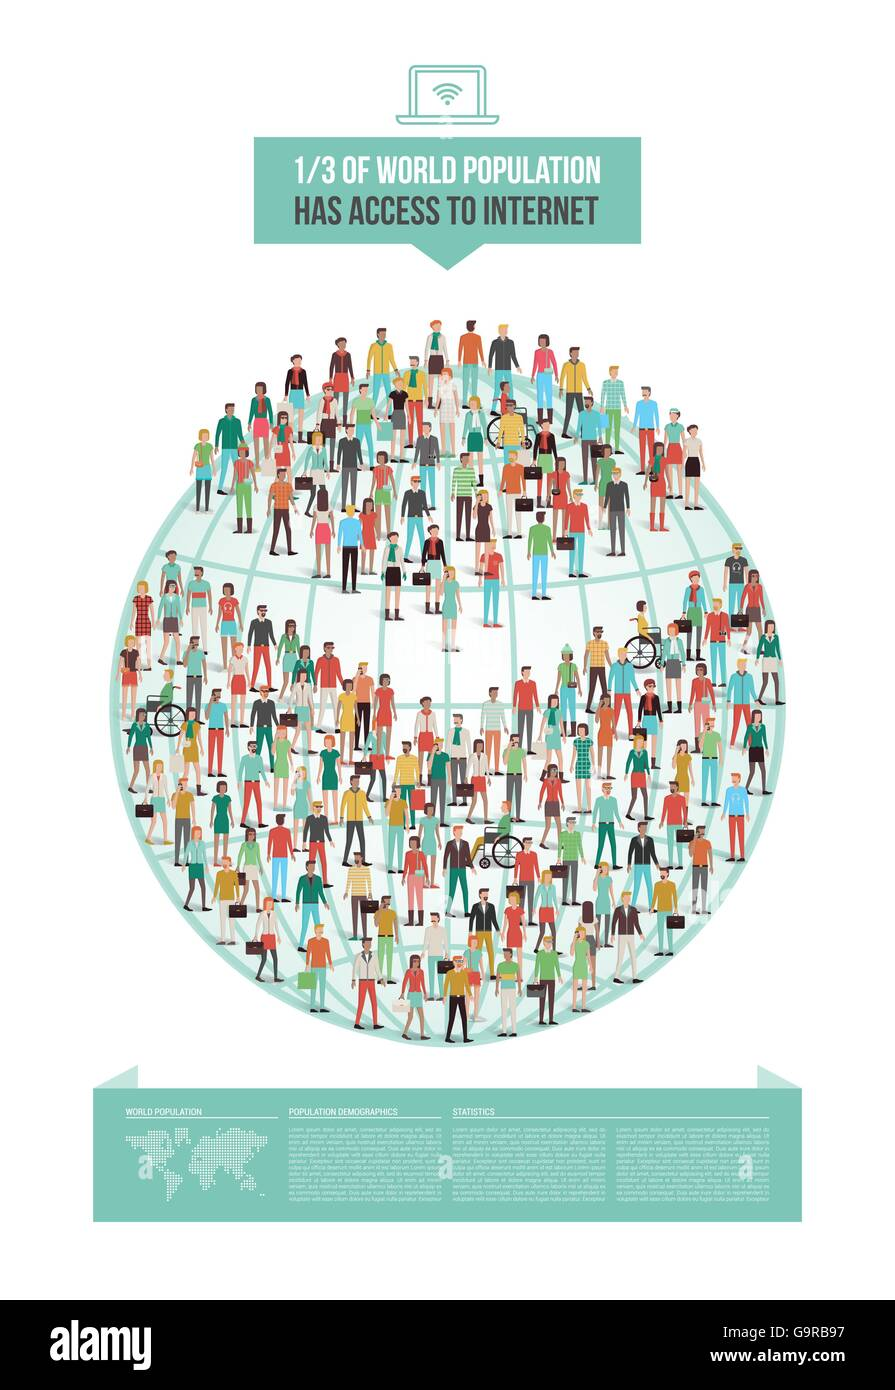 Global internet usage statistic demographics, pie chart composed of people, vector infographic - Stock Image